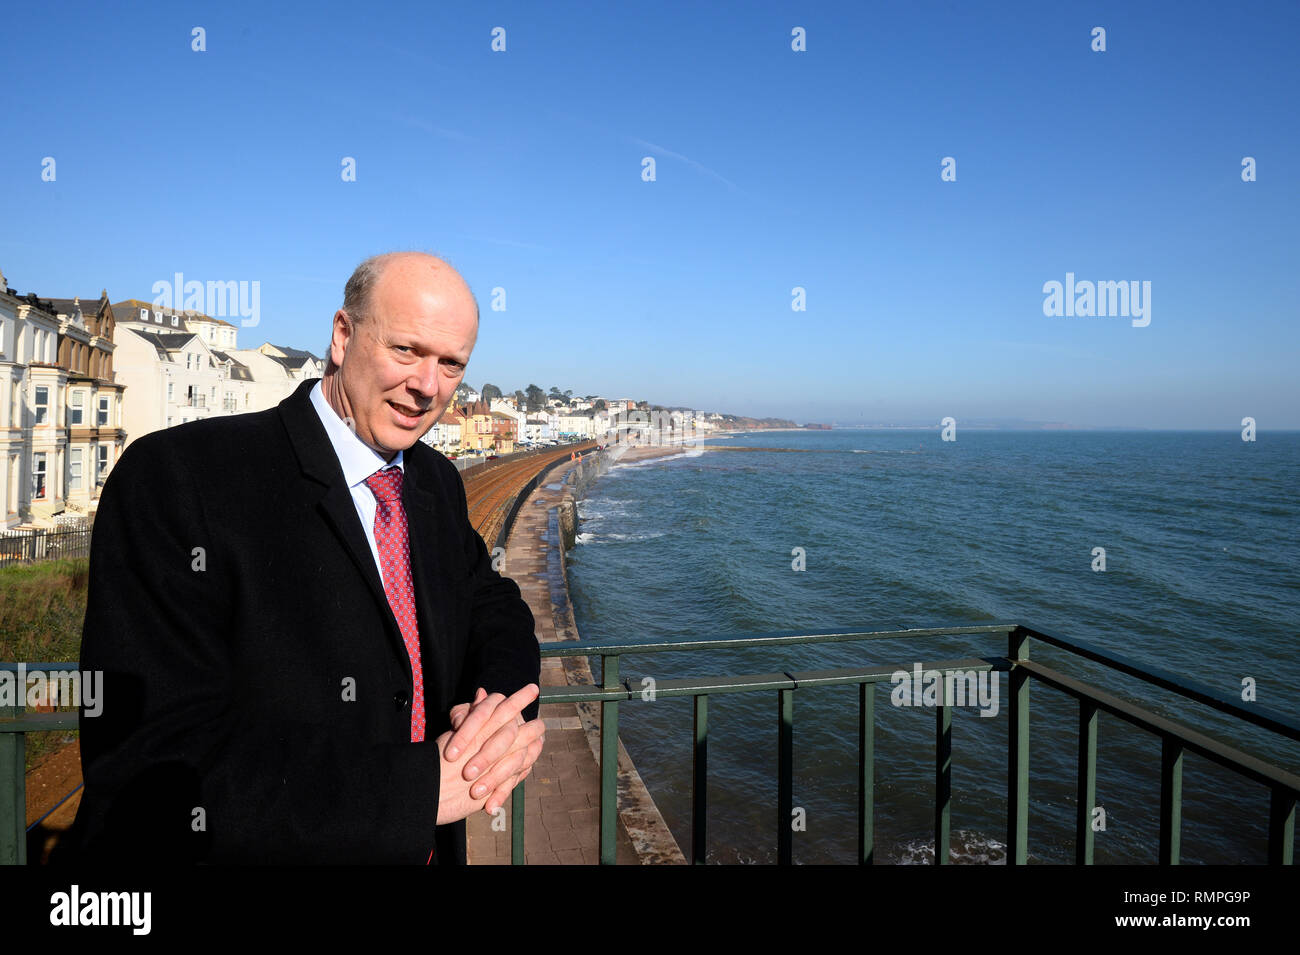 Dawlish, UK. 15th Feb, 2019. 15/02/2019  MP Chris Grayling visiting Dawlish. - Photo mandatory by-line: Andy Styles - Tel: 01626 872731 - Mobile: 07834214253 TQAS20190215B-017_C Credit: Andy Styles Photography/Alamy Live News - Stock Image